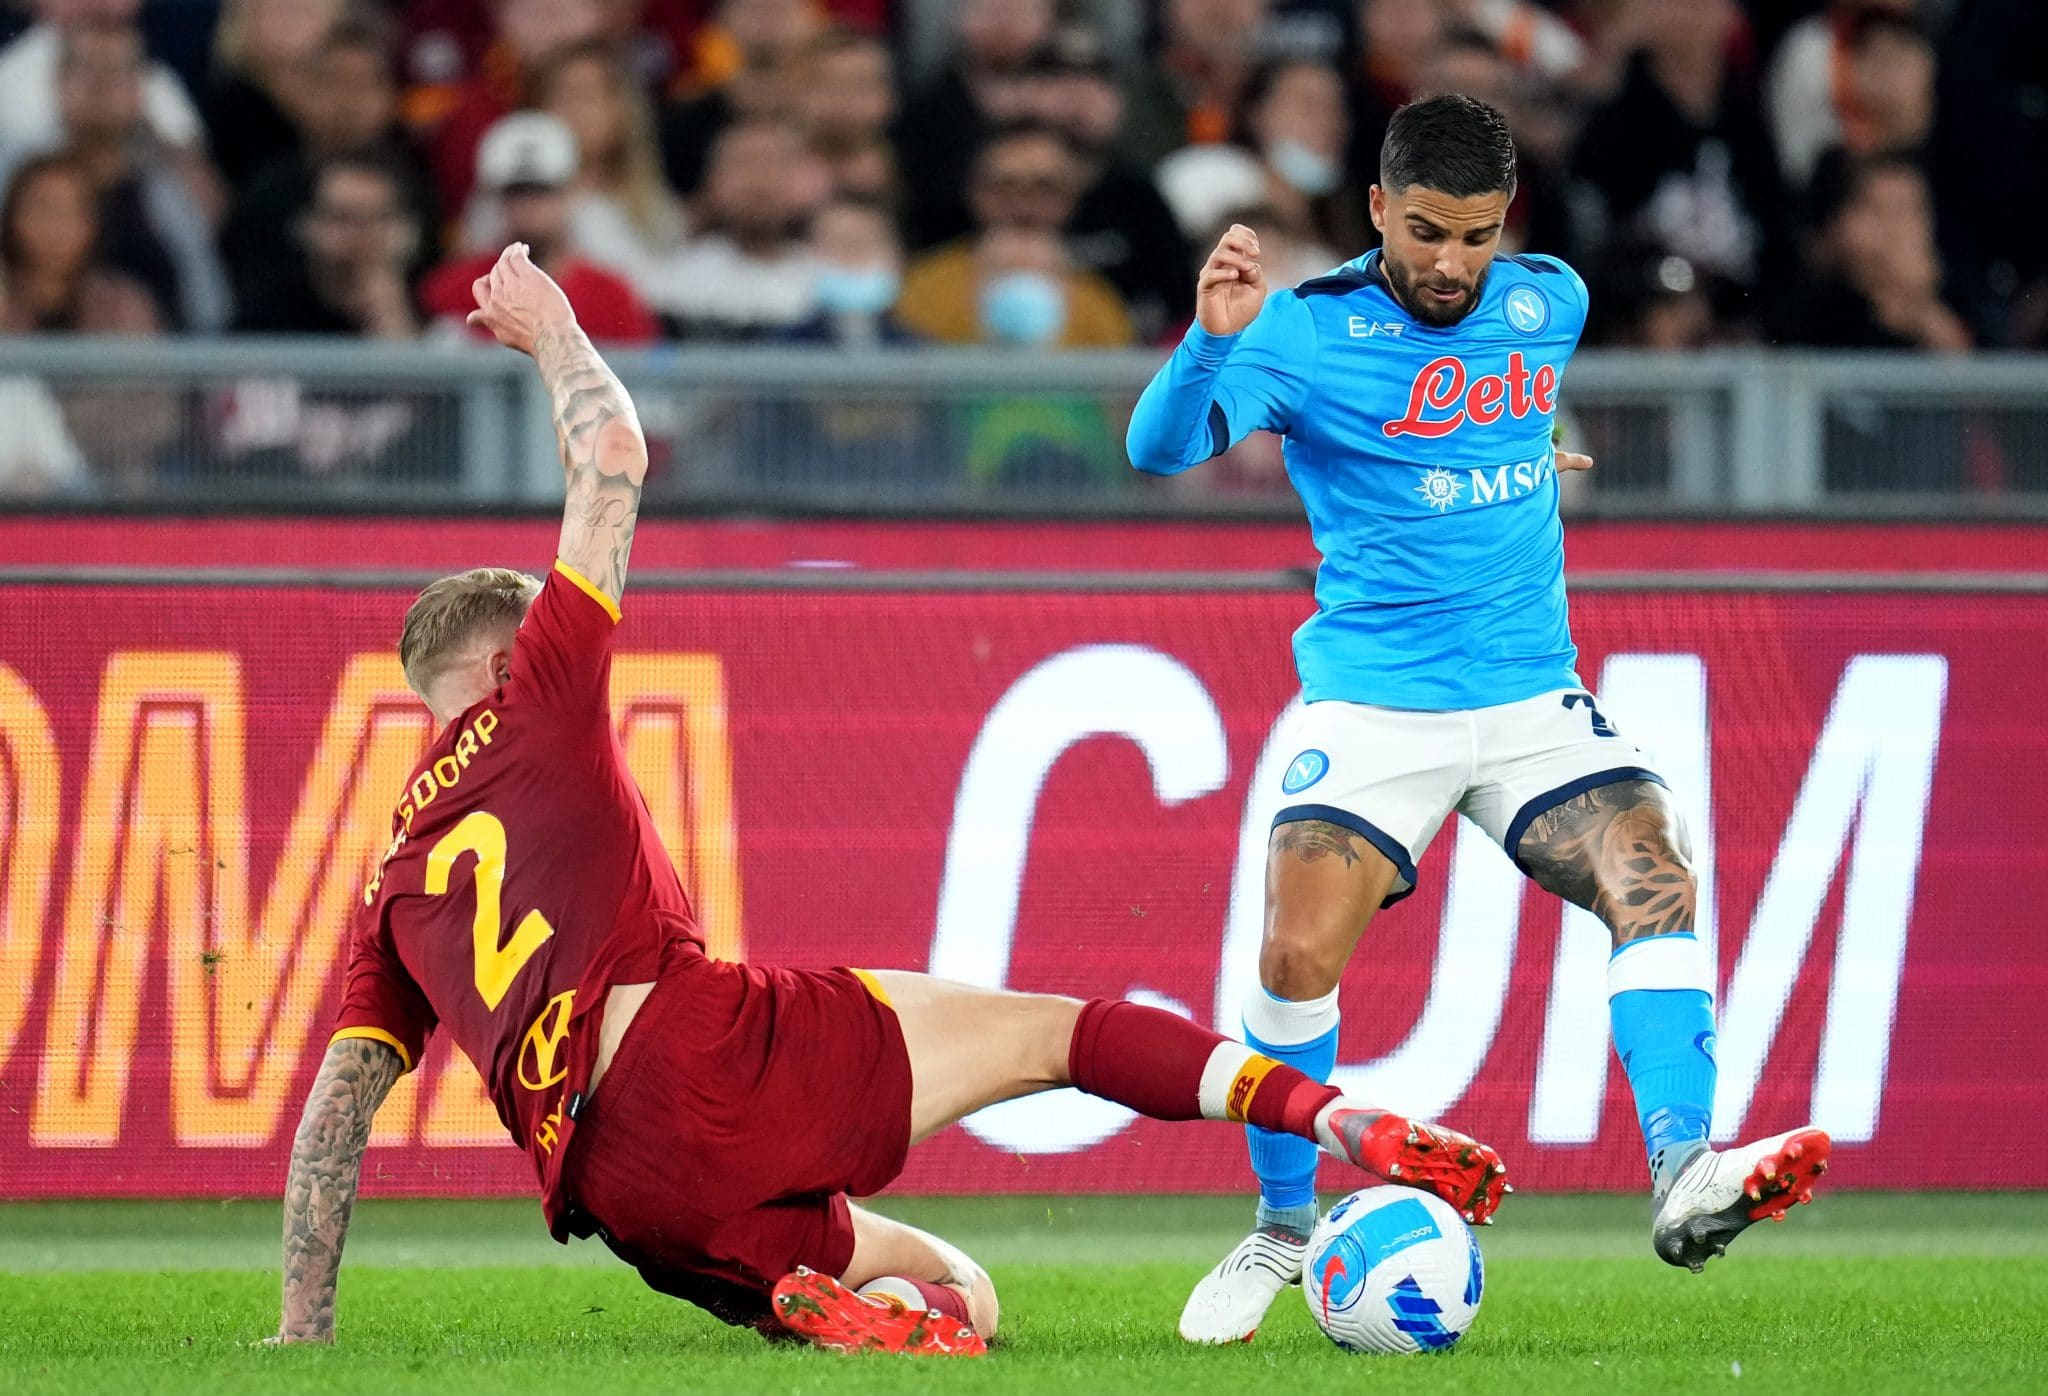 ROME, ITALY - OCTOBER 24: Lorenzo Insigne of SSC Napoli competes for the ball with Rick Karsdorp of AS Roma during the Serie A match between AS Roma and SSC Napoli at Stadio Olimpico on October 24, 2021 in Rome, Italy. (Photo by MB Media/Getty Images)